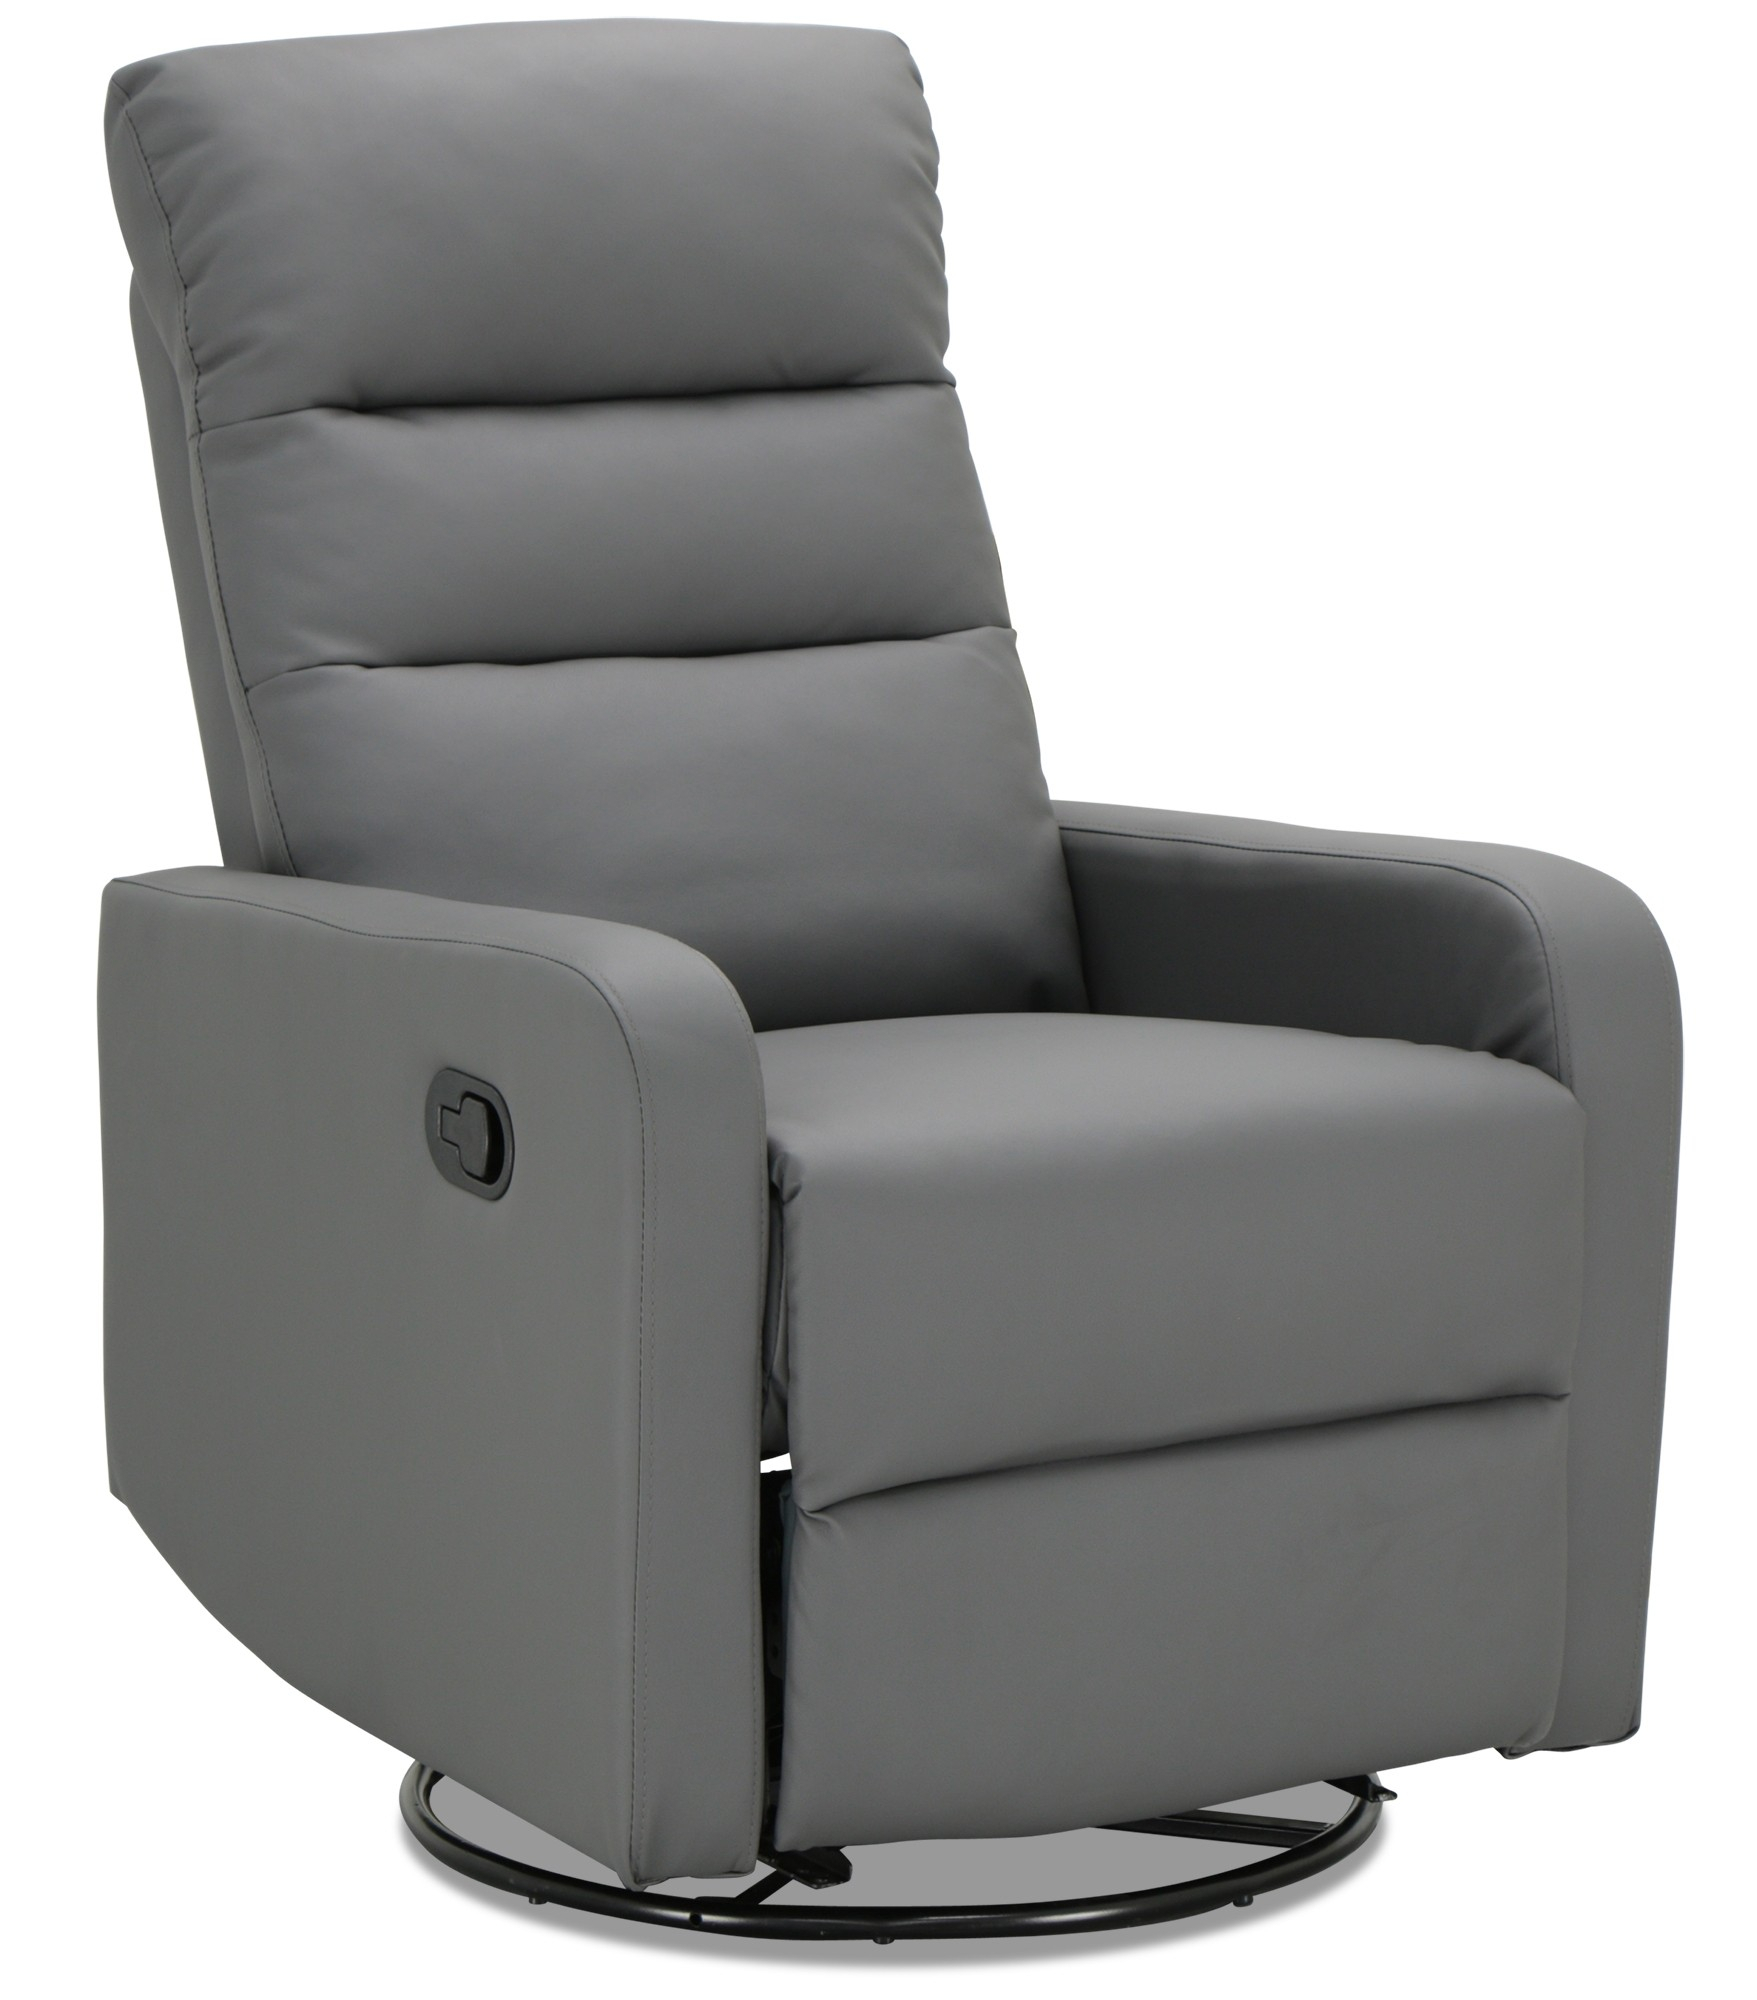 Rasco Recliner With Swivel In Pu Dark Grey | Furniture & Home Décor Intended For Dark Grey Swivel Chairs (Image 18 of 20)